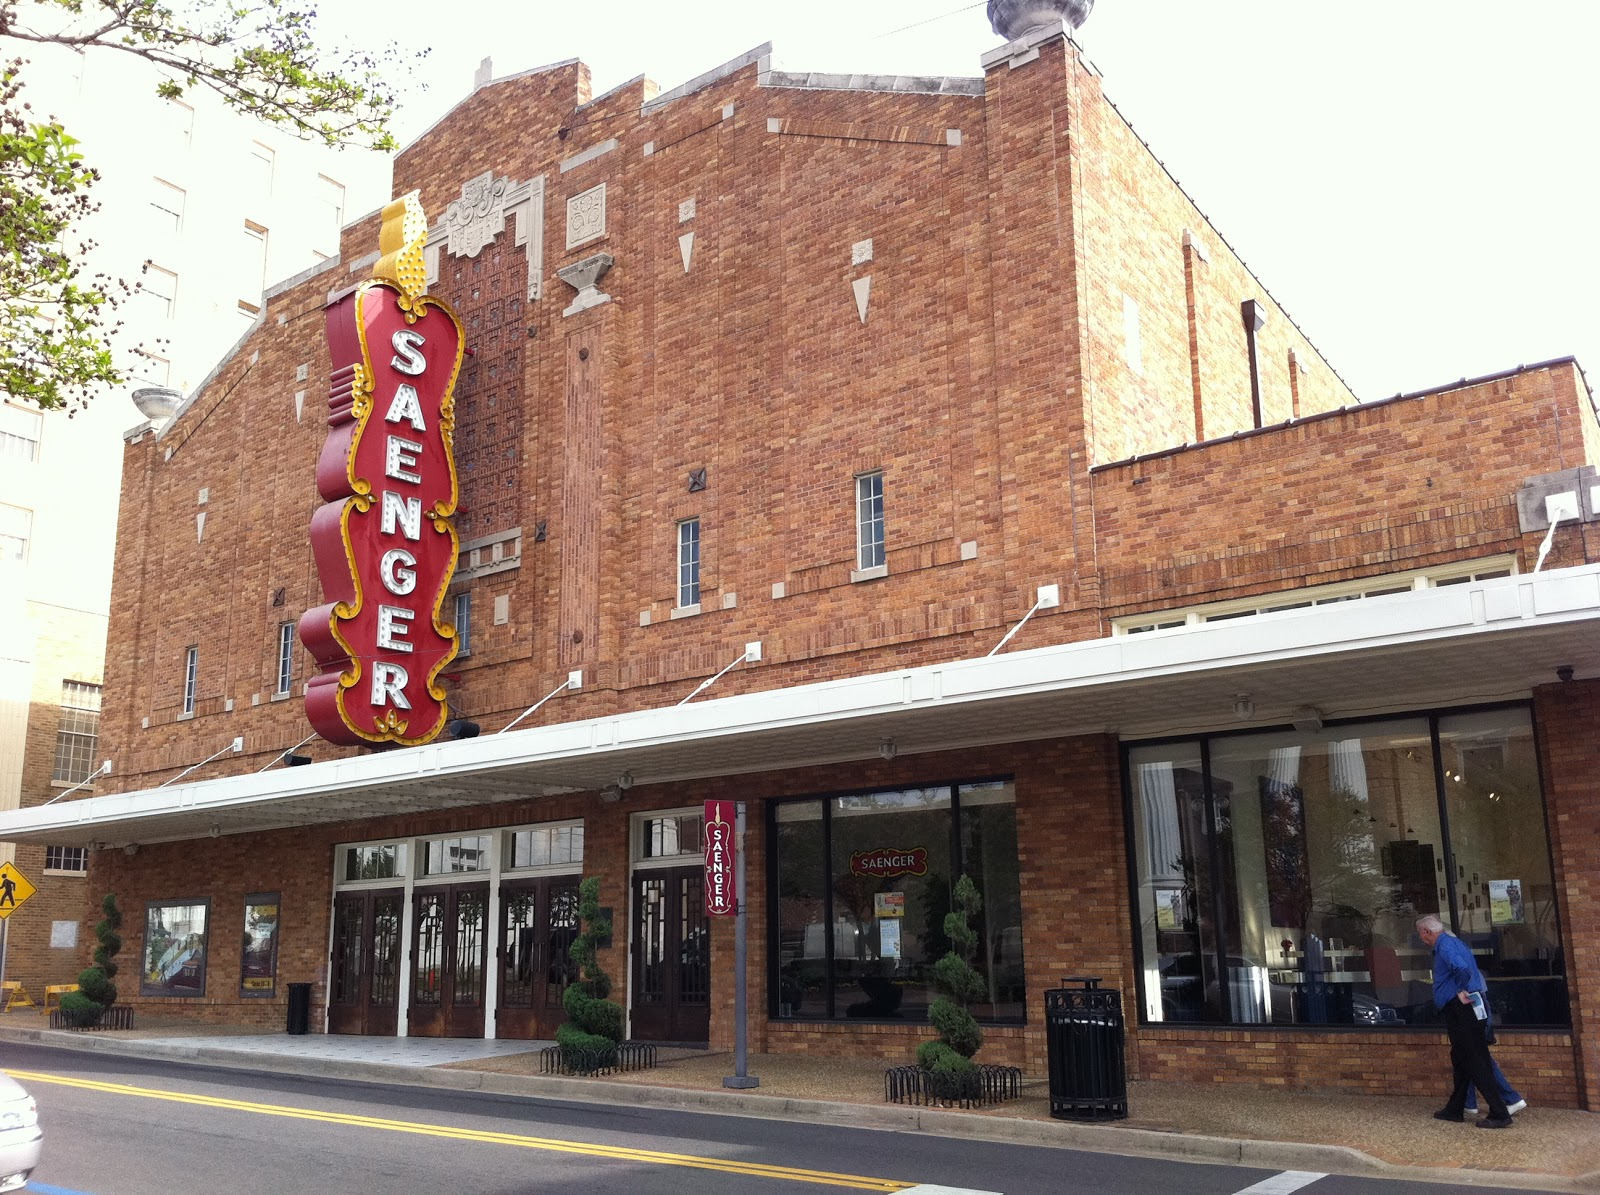 CKS thoughts: Hattiesburg Architecture- Saenger Theater